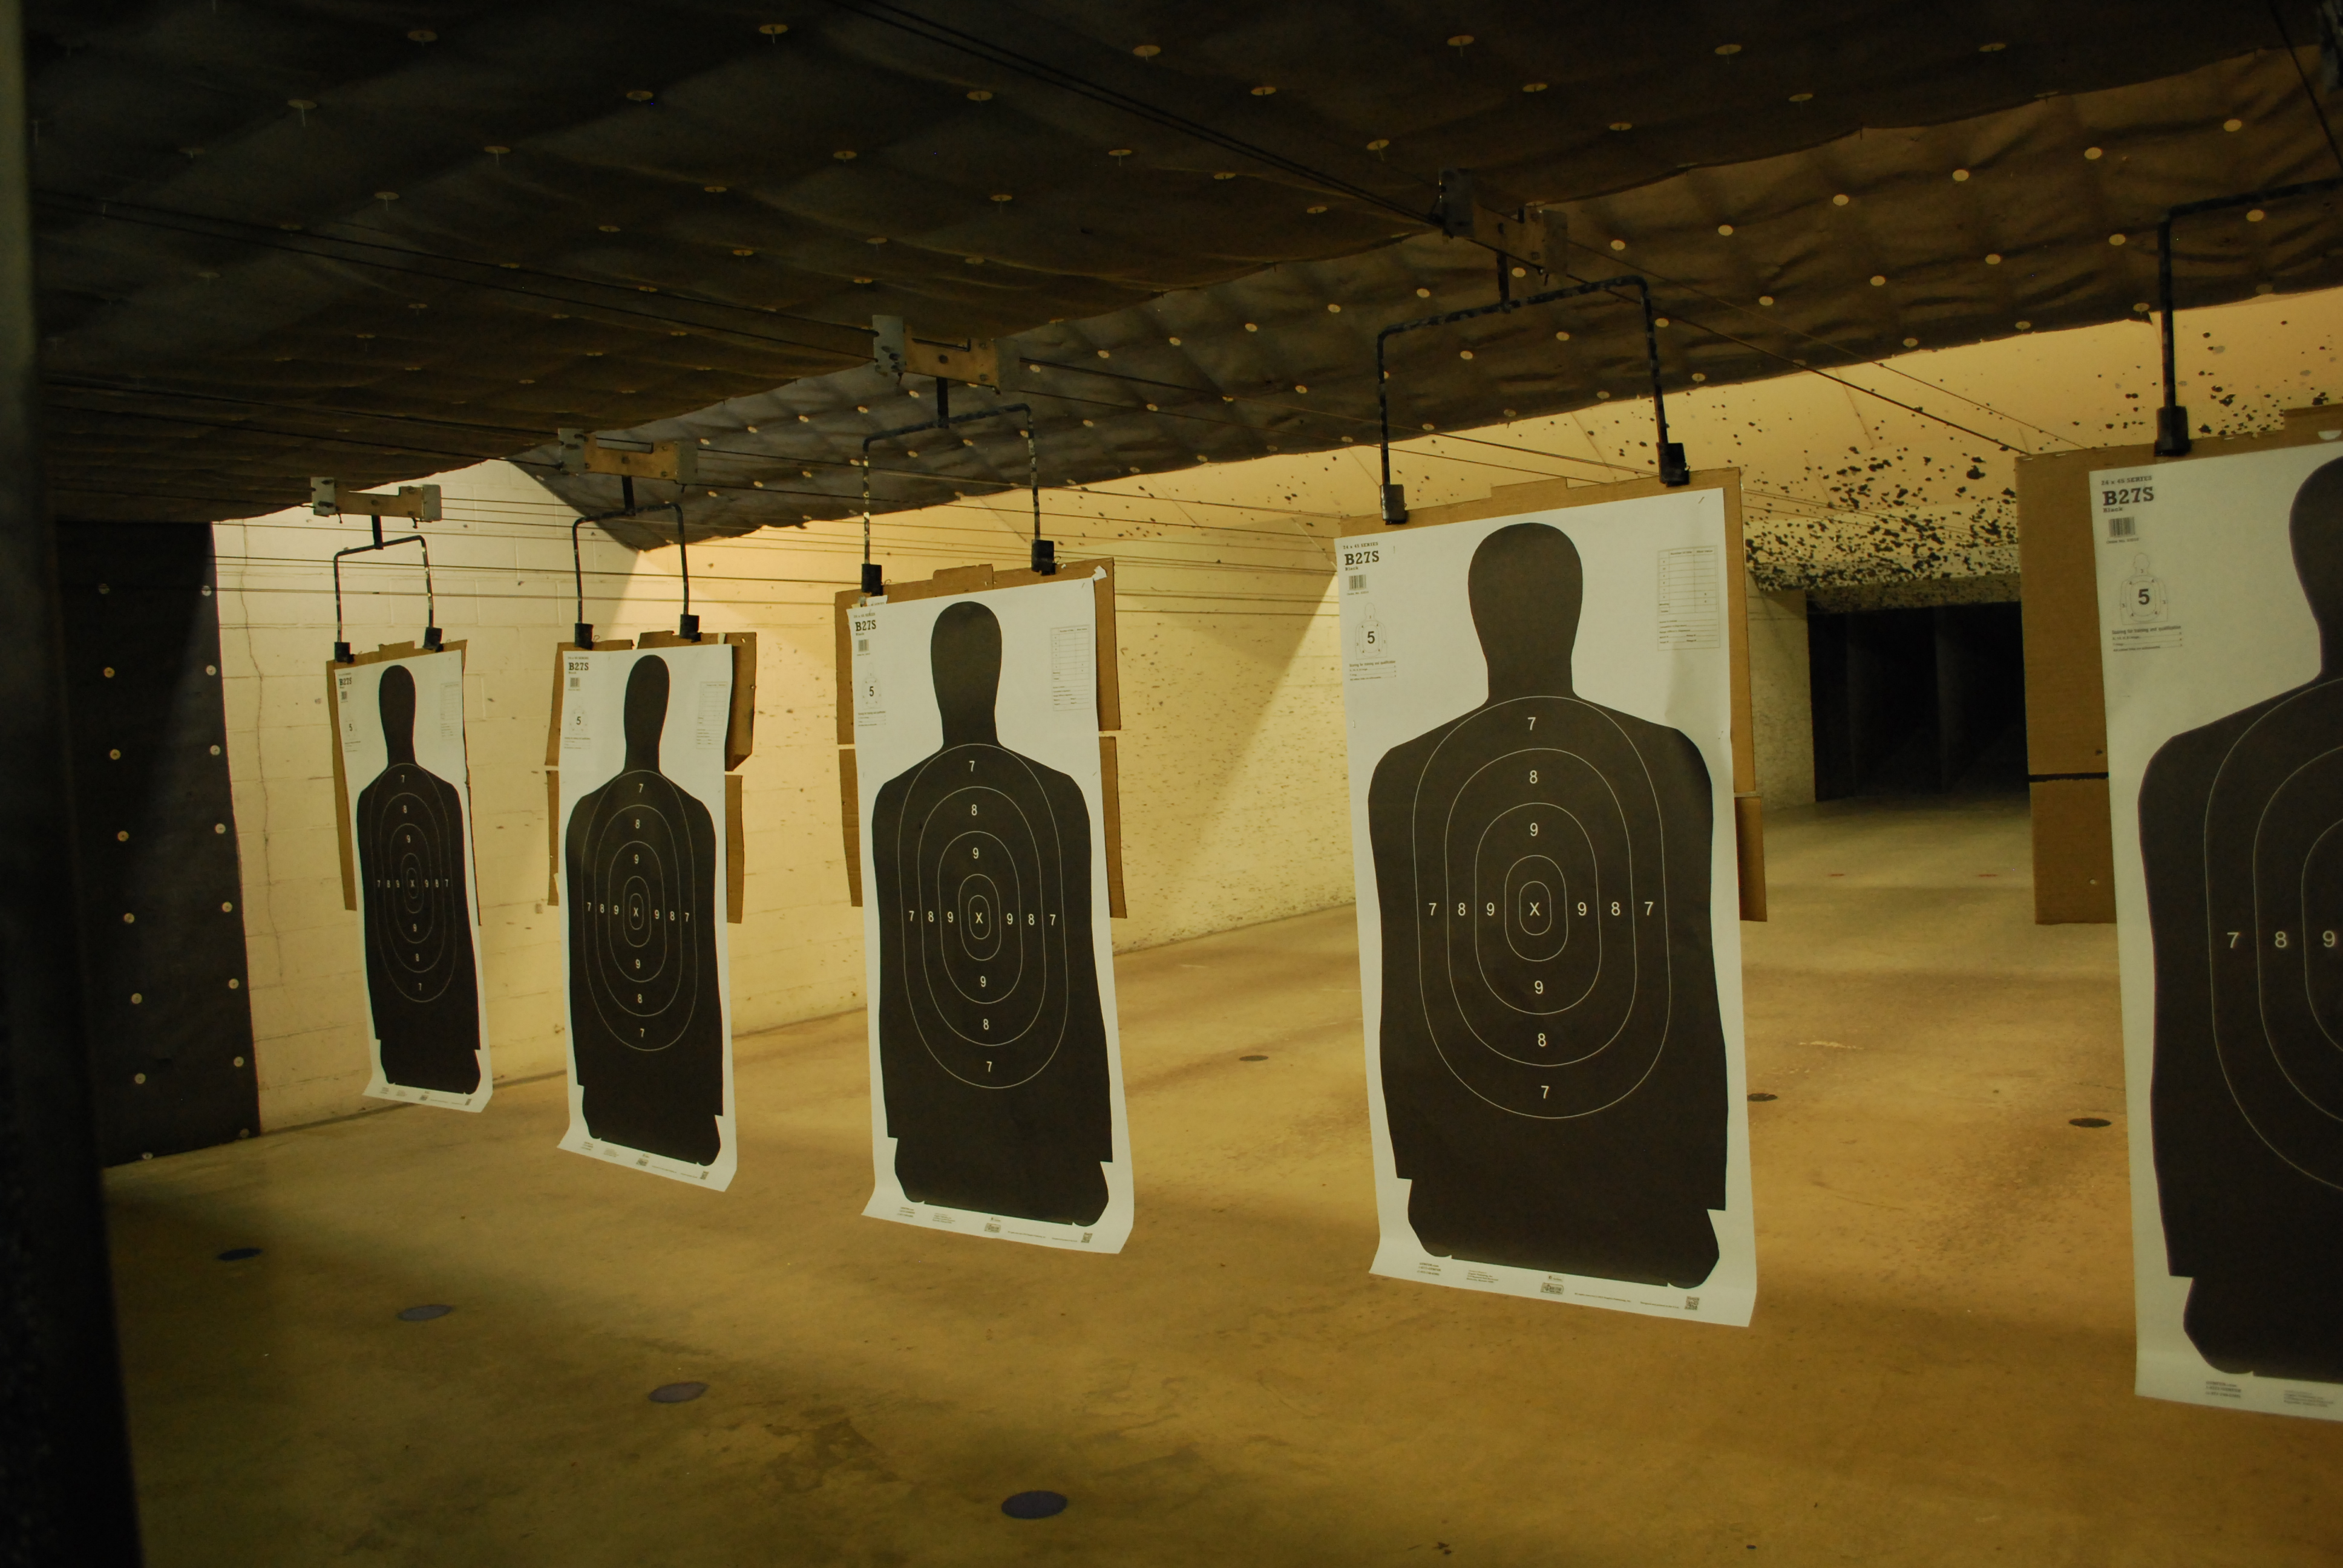 Shooting Range Wallpapers High Quality Download Free